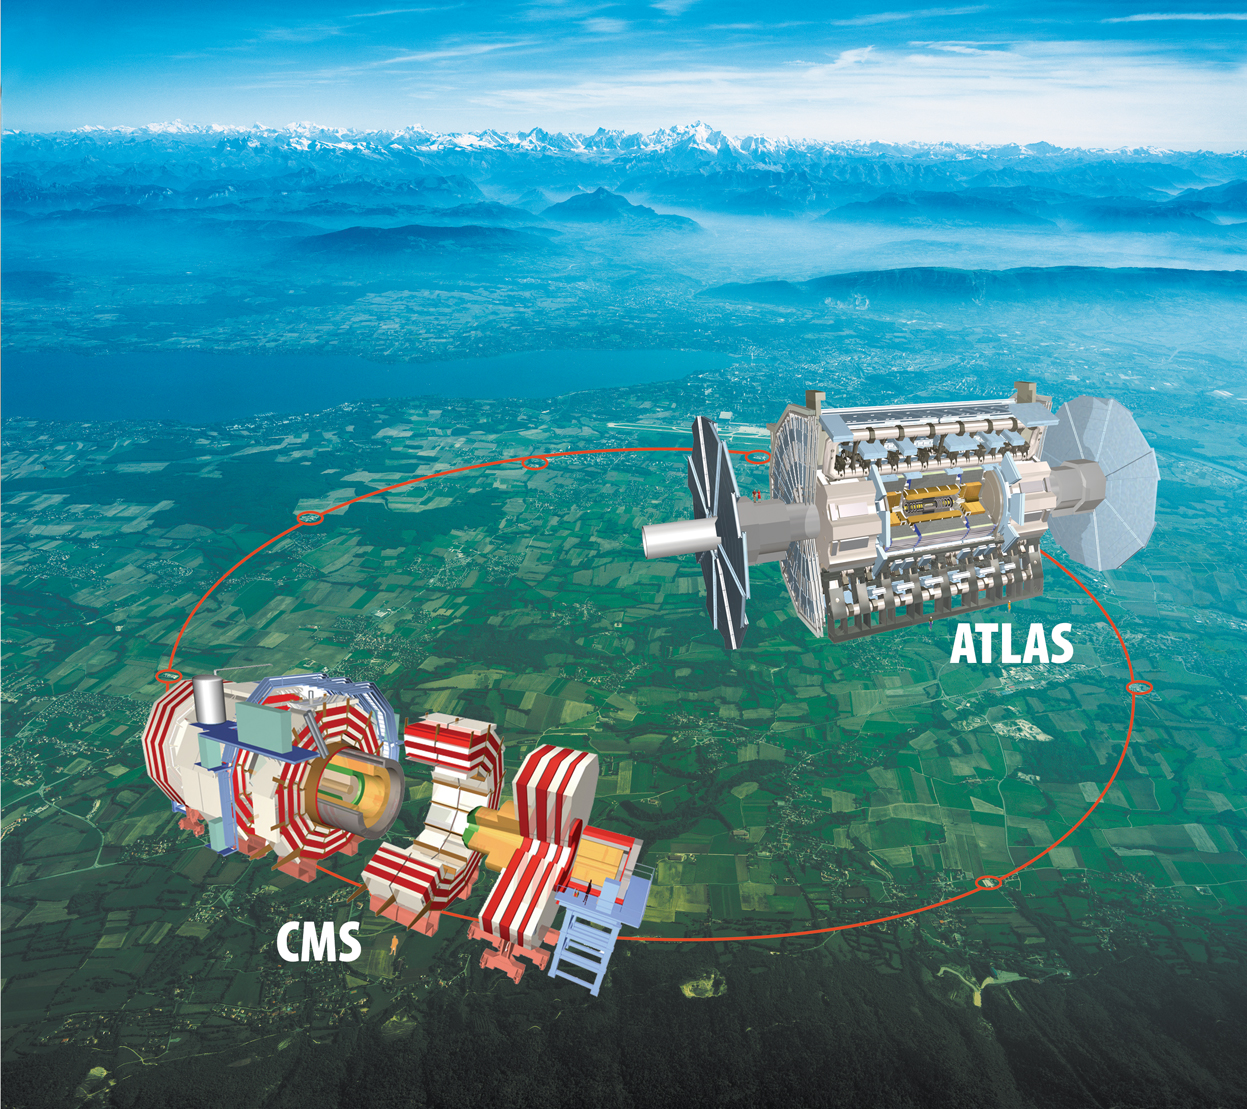 Two experiments are searching directly for the Higgs boson: ATLAS and CMS.